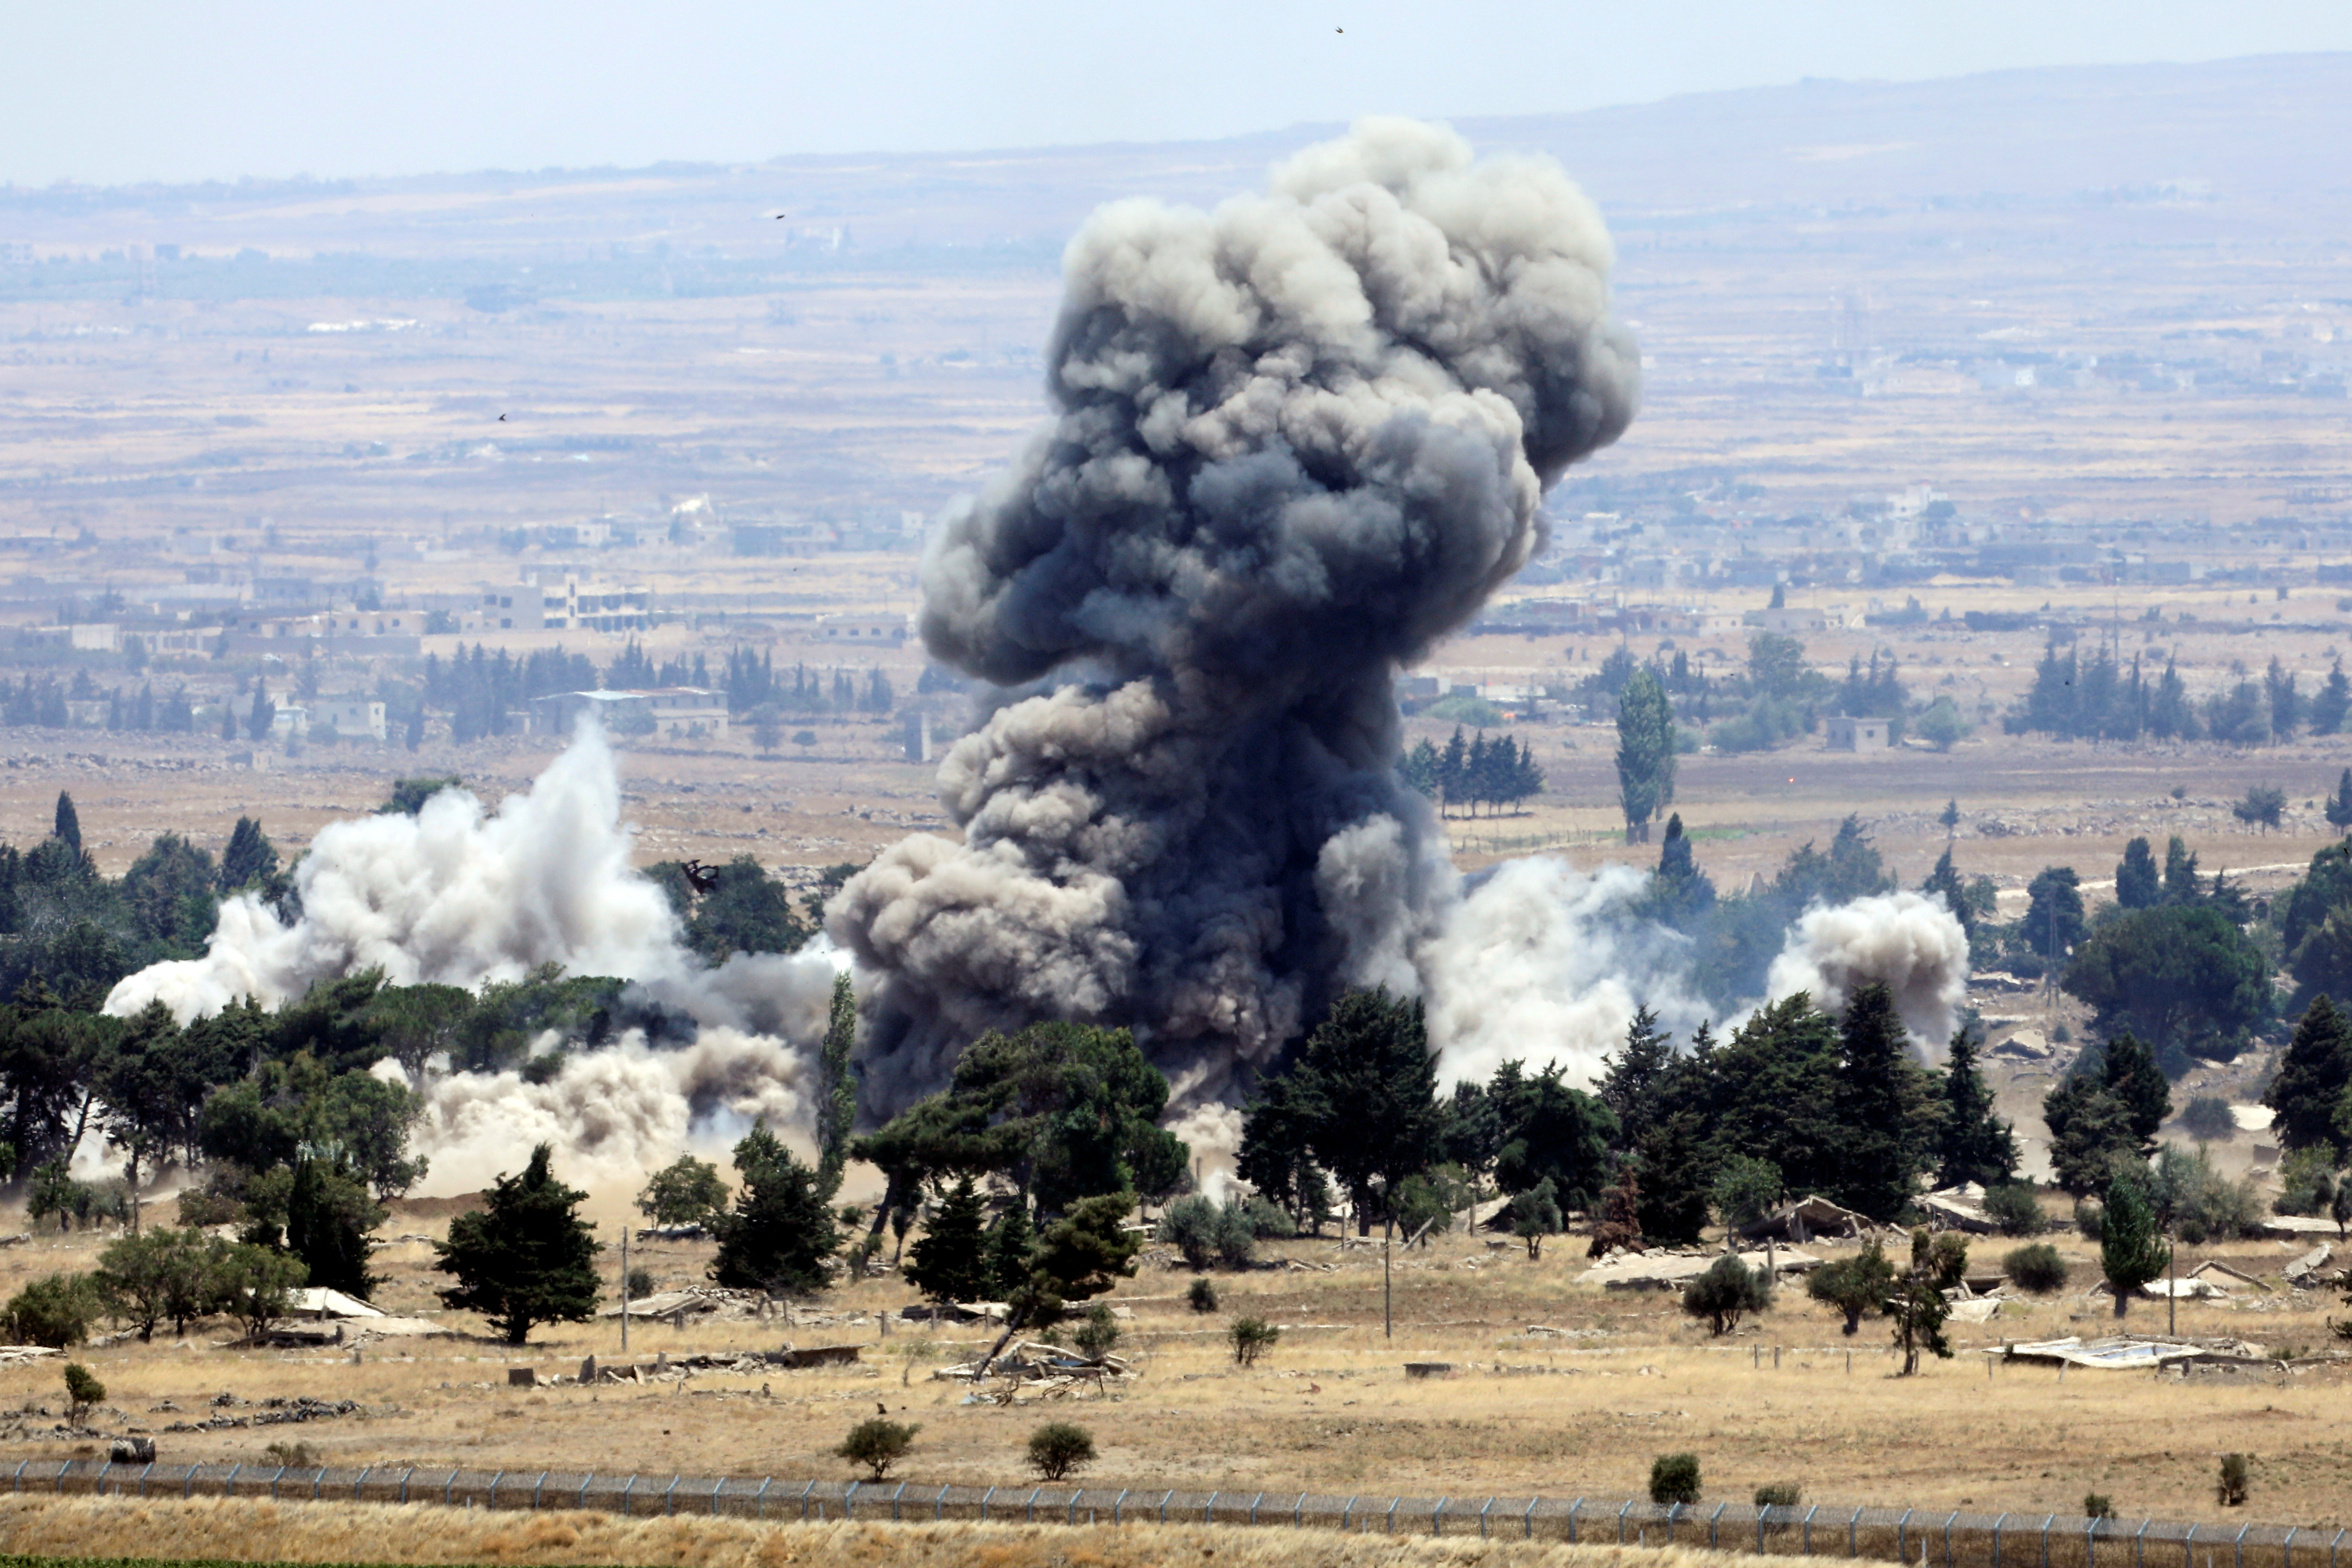 An explosion is pictured at Quneitra at the Syrian side of the Israeli Syrian border, as seen from the Israeli-occupied Golan Heights, July 22. REUTERS/Ronen Zvulun